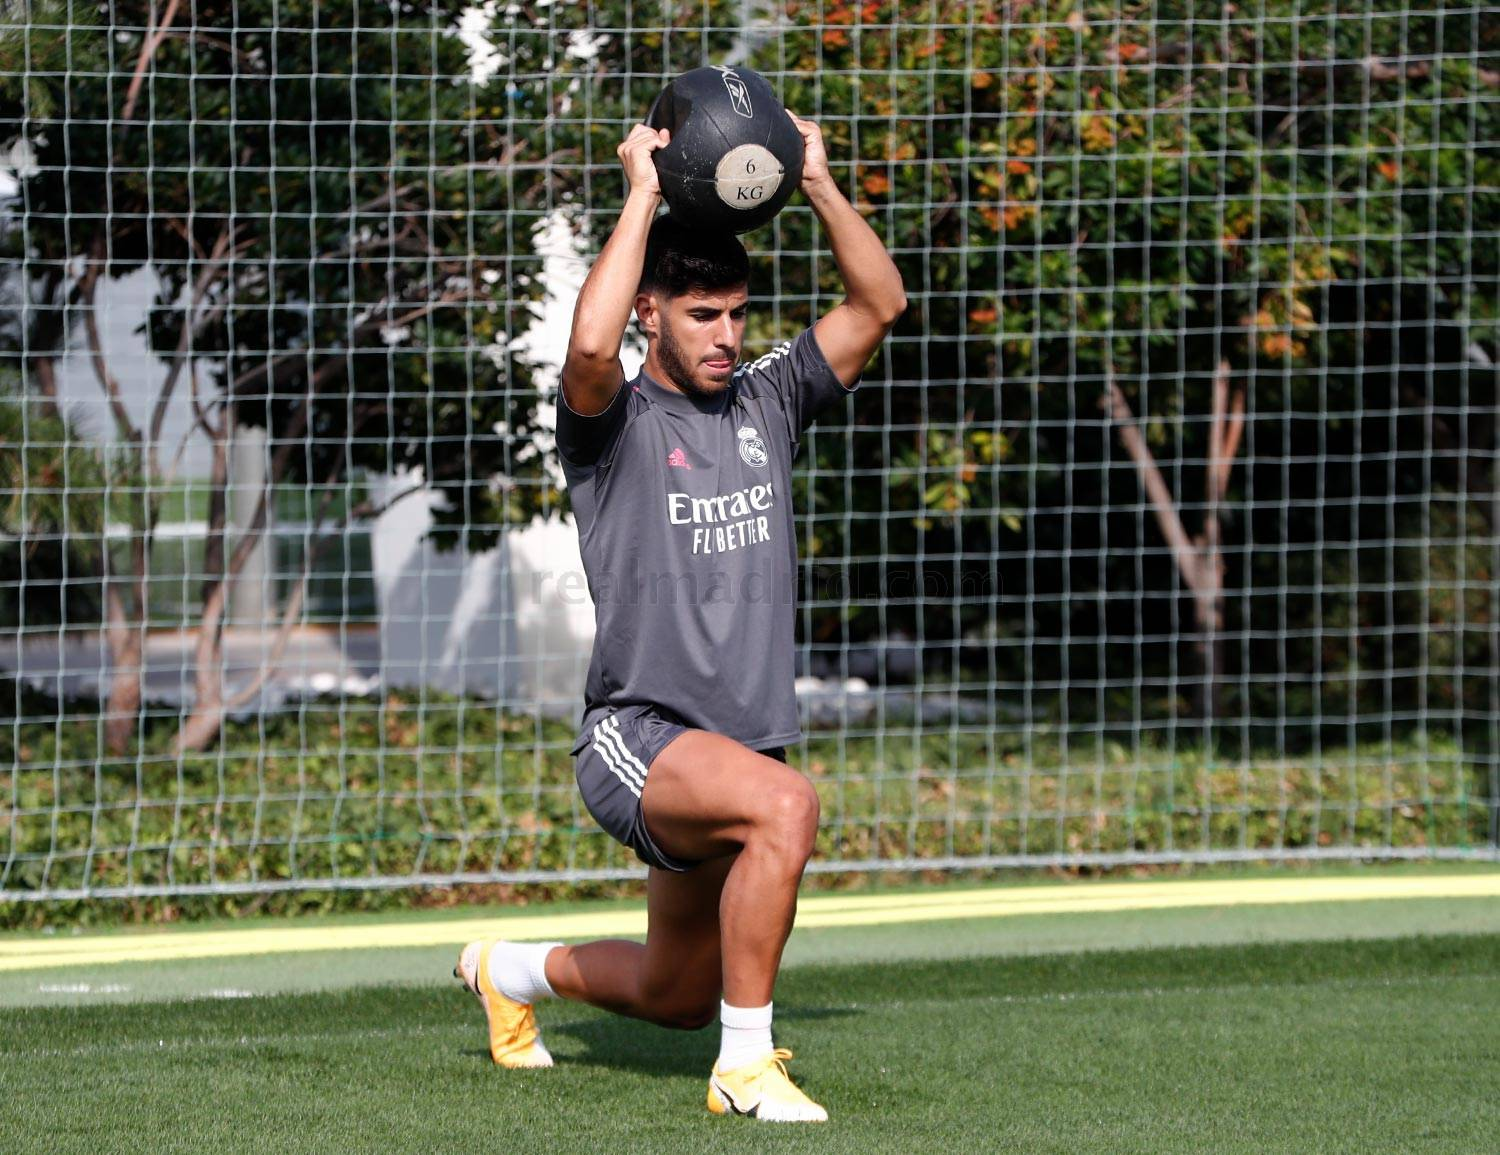 Real Madrid - Entrenamiento del Real Madrid  - 16-09-2020